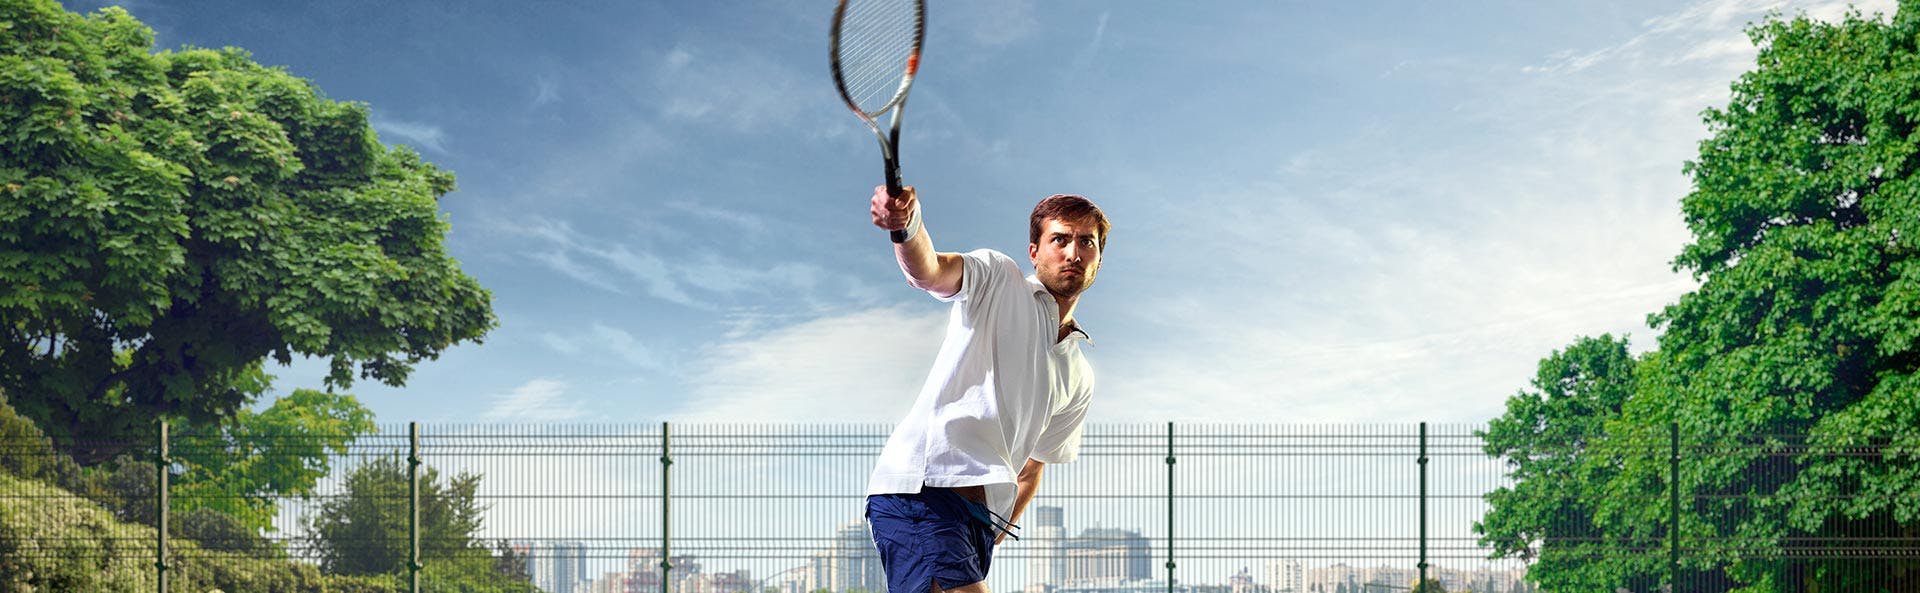 A man playing tennis